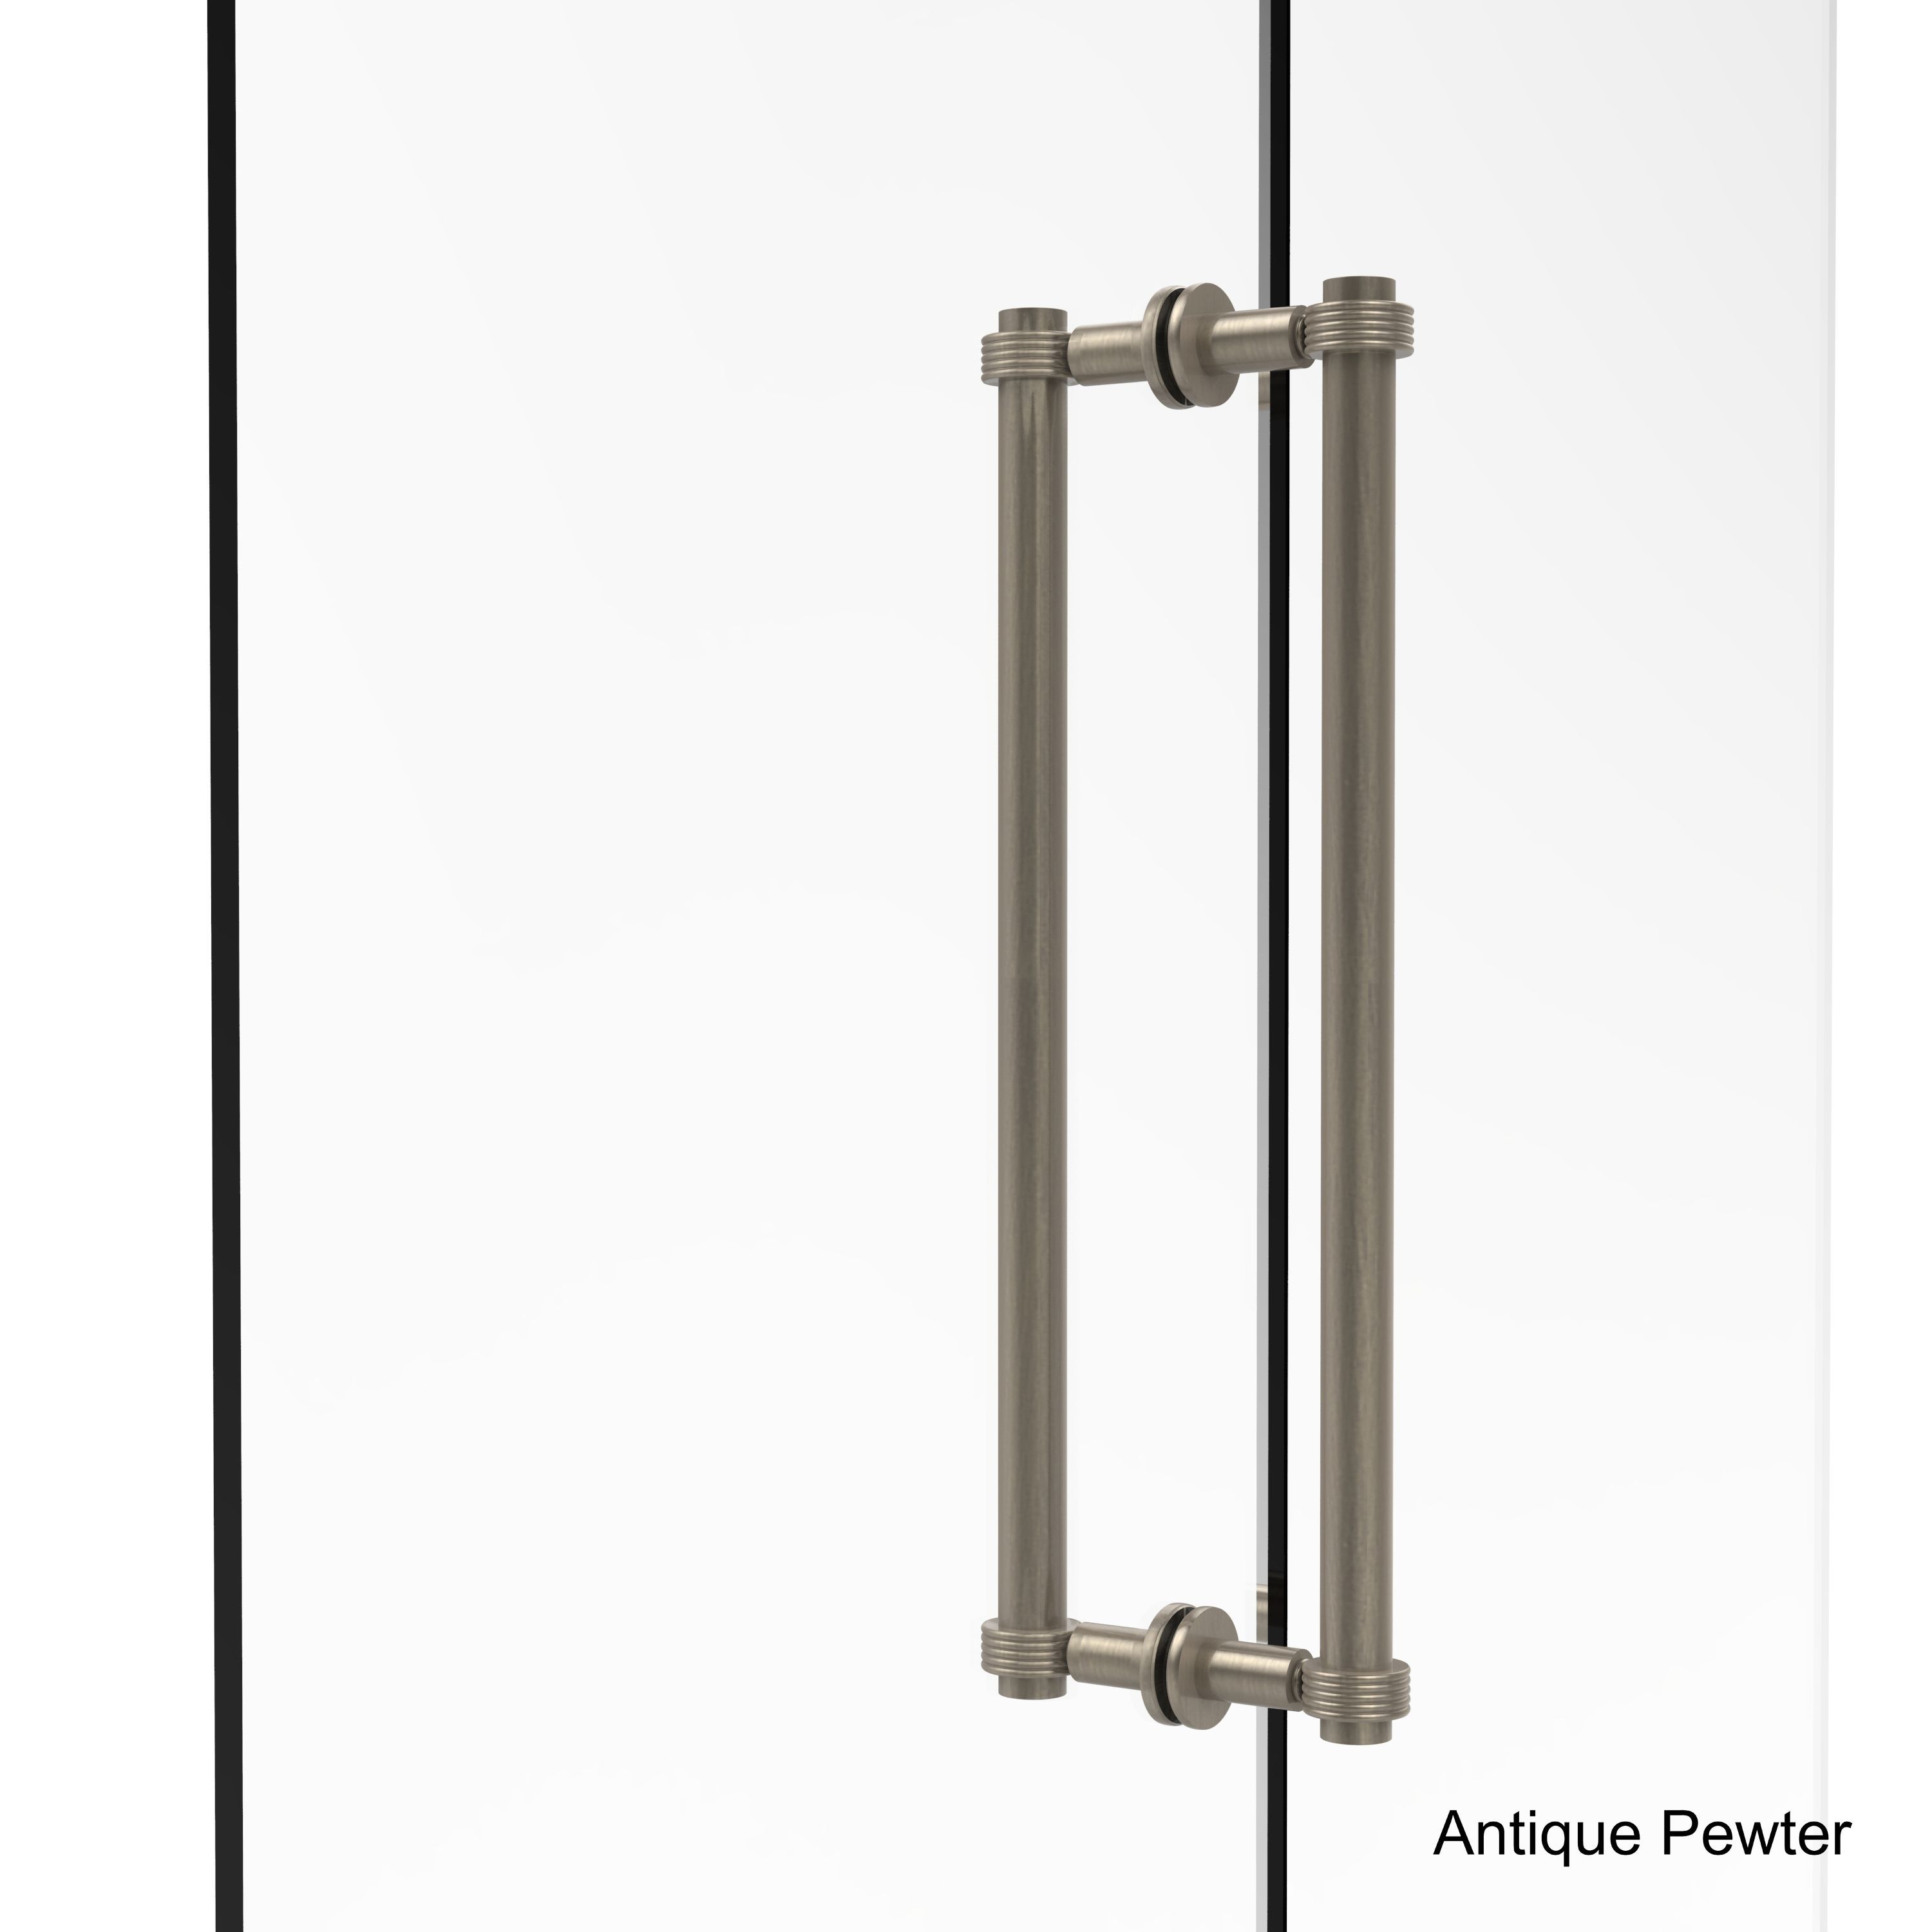 Allied brass contemporary inch backtoback shower door pull with